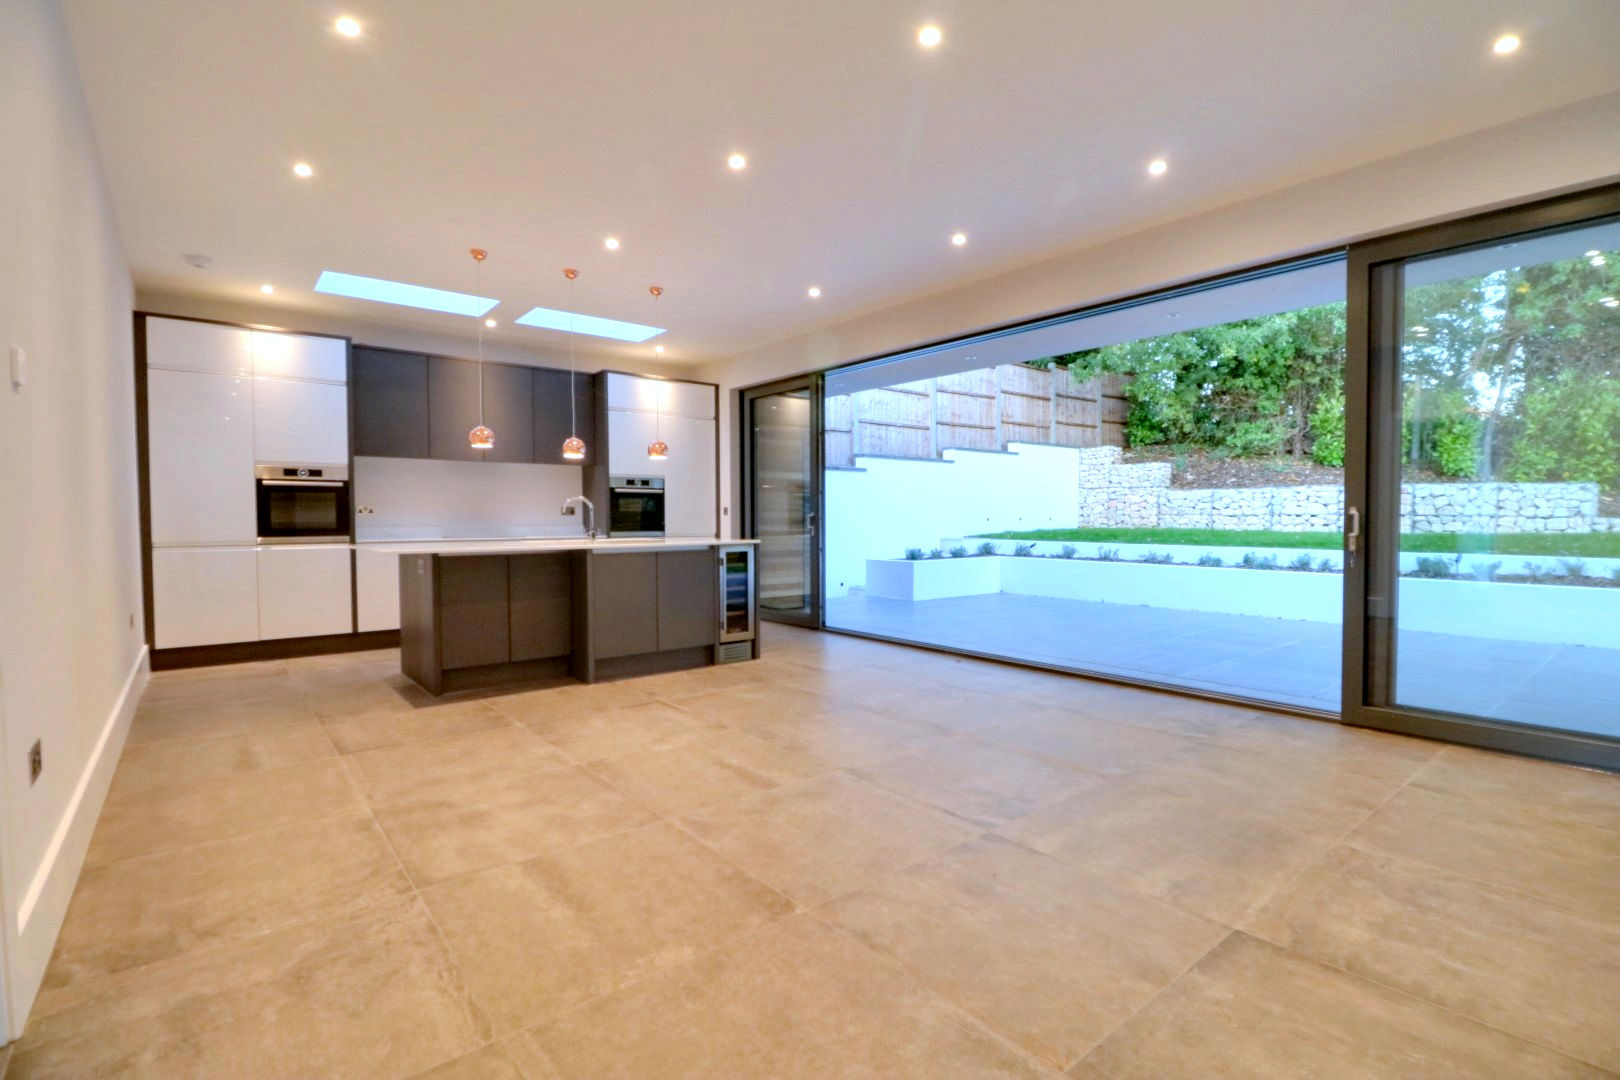 Modern kitchen-living area in London new build transformed with Home Automation by Bryanston Smarthome